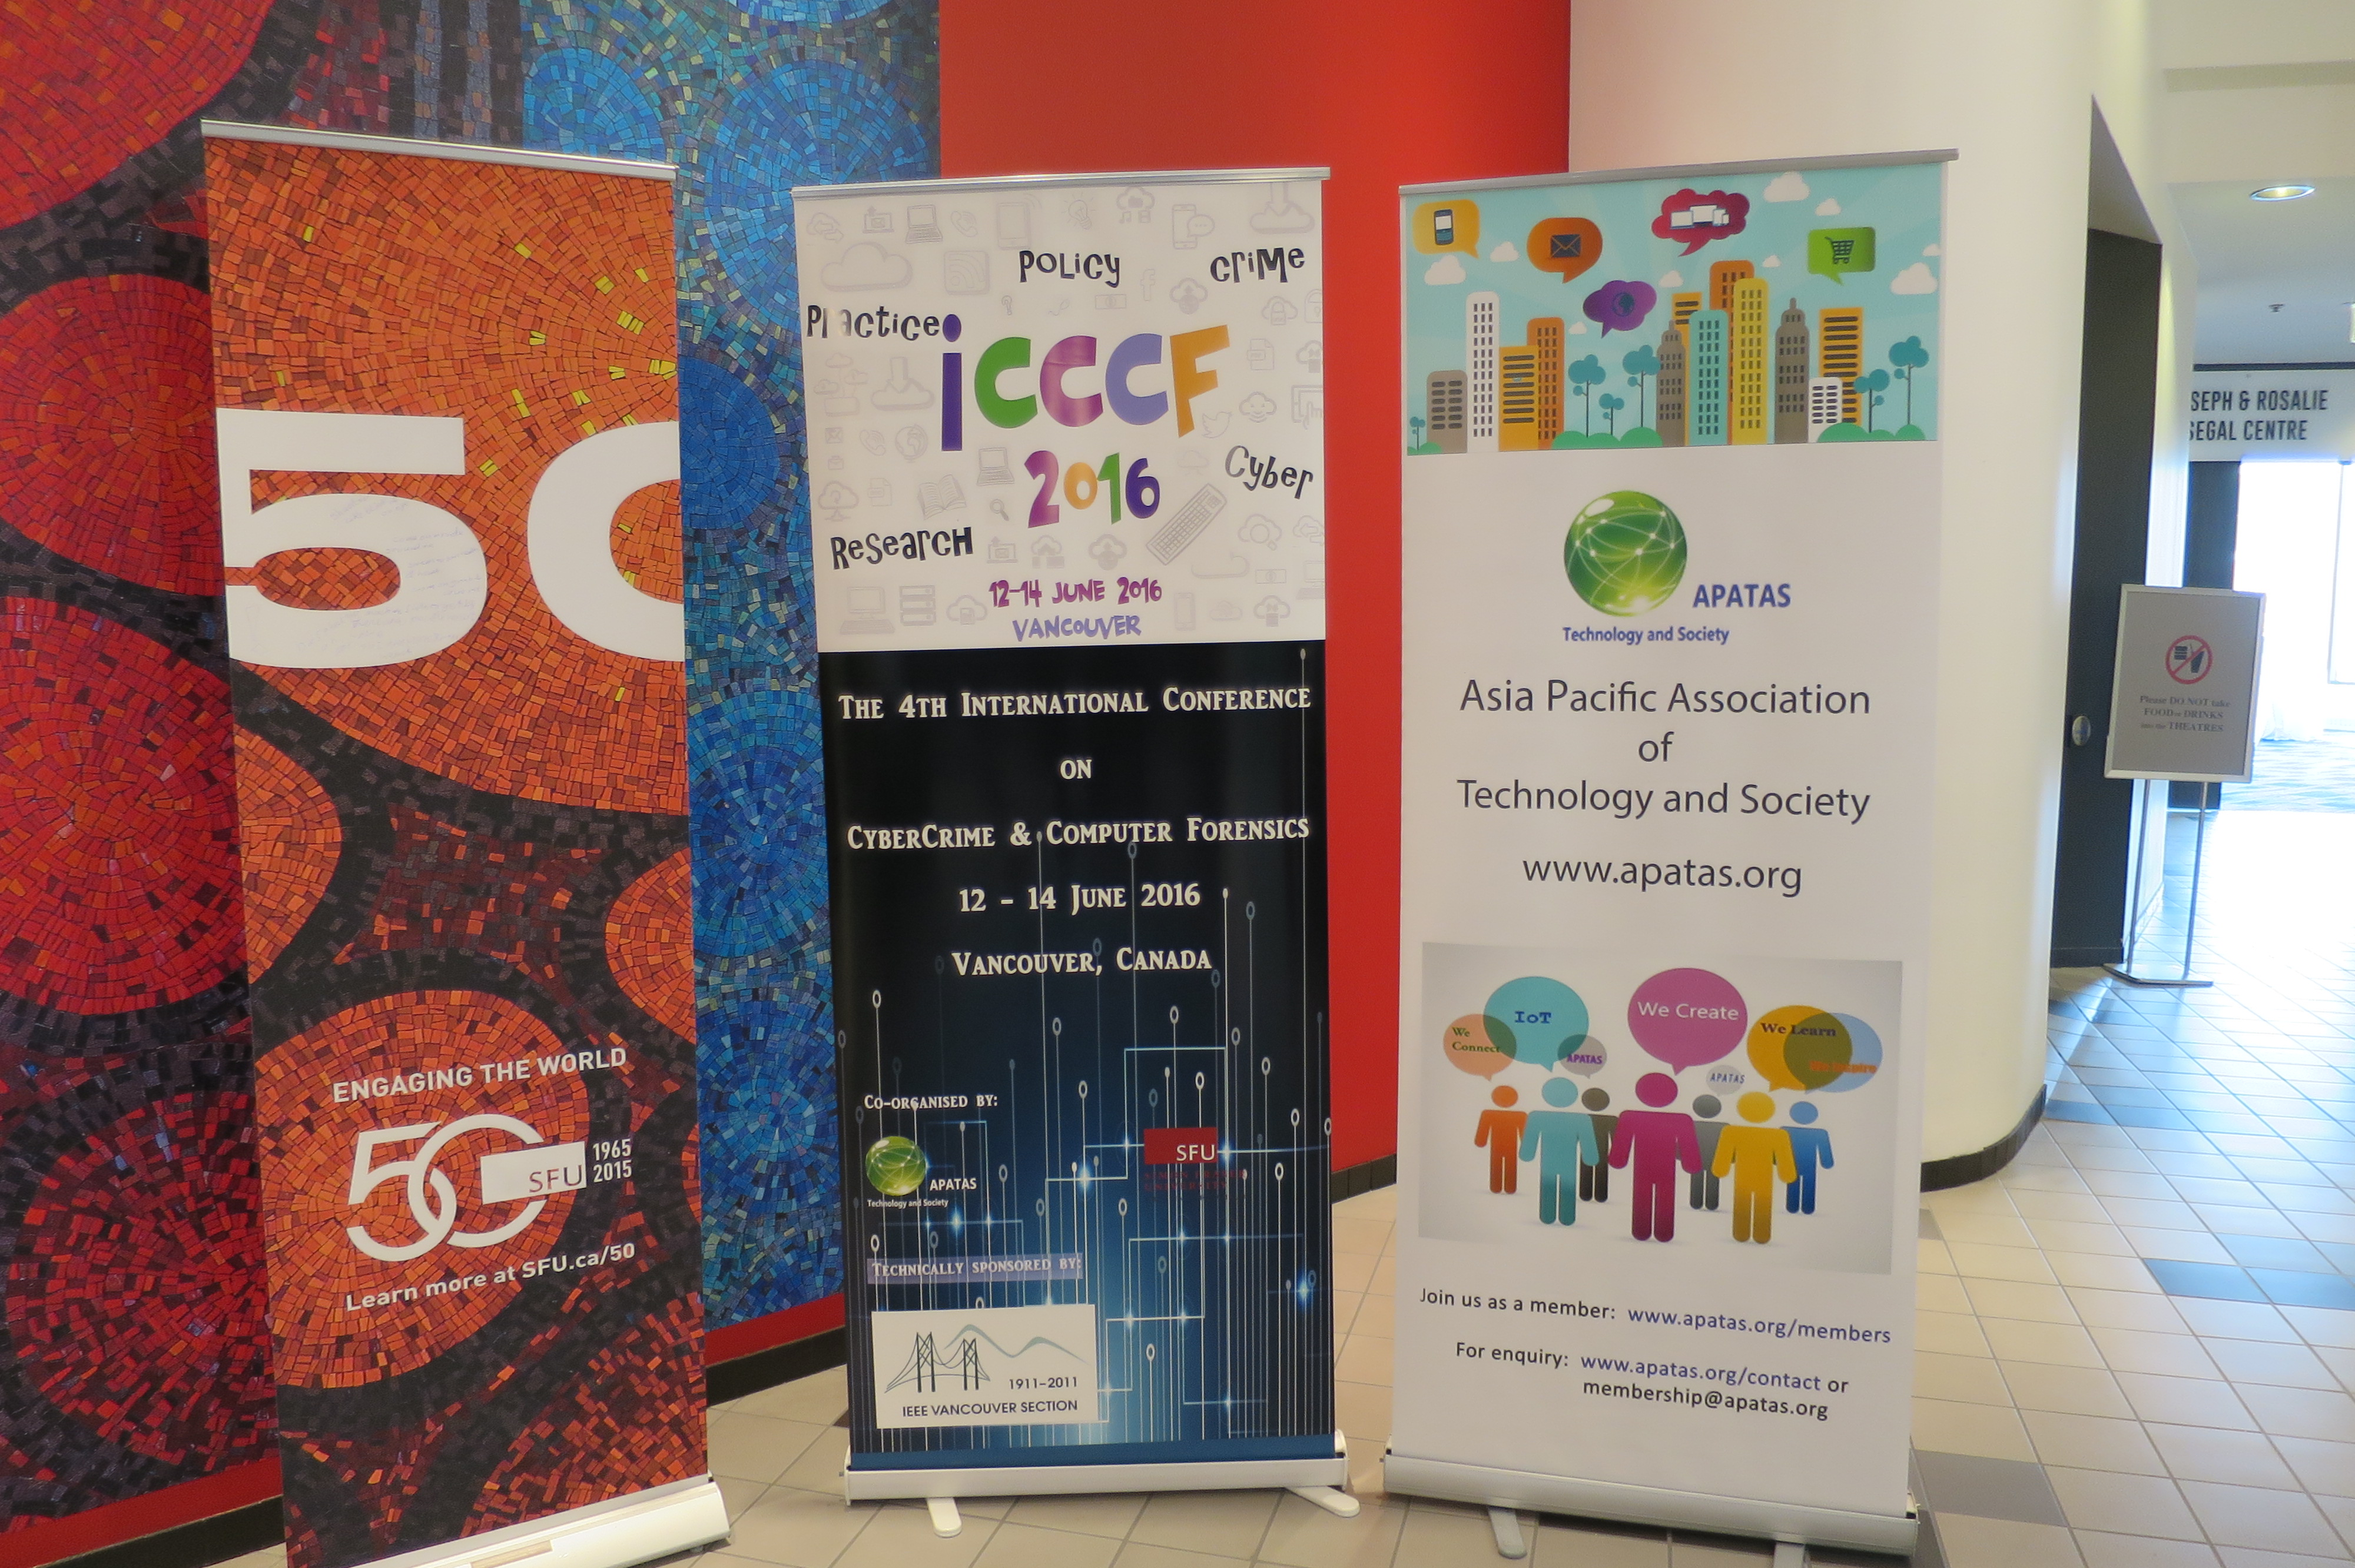 International Conference on CyberCrime and Computer Forensics (ICCCF) 2016